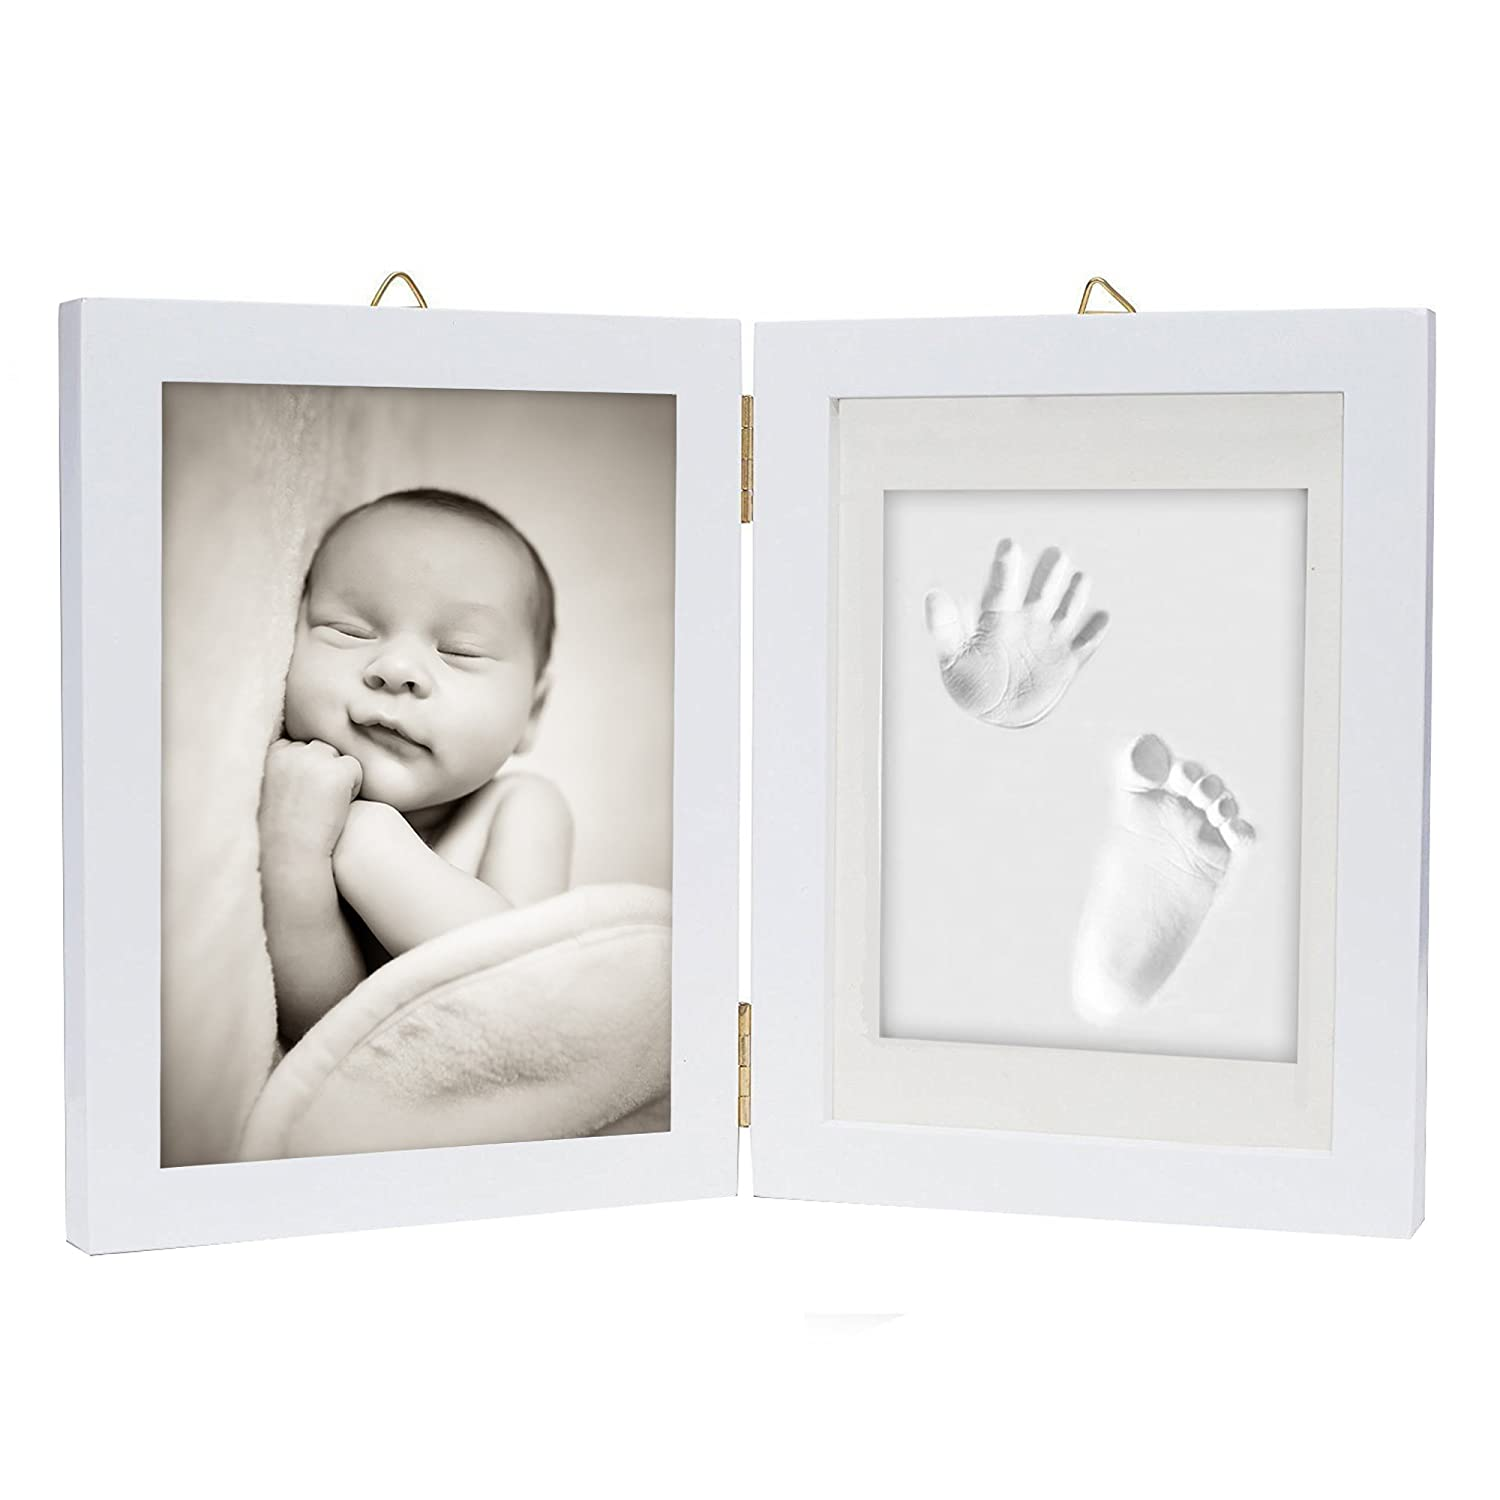 Baby Hand & Foot Print Frame Kit – Soft, Safe imprint Clay for moulding with a Premium Wood frame and High Quality Acrylic Glass Cover - Ultimate newborn baby gift chuckle